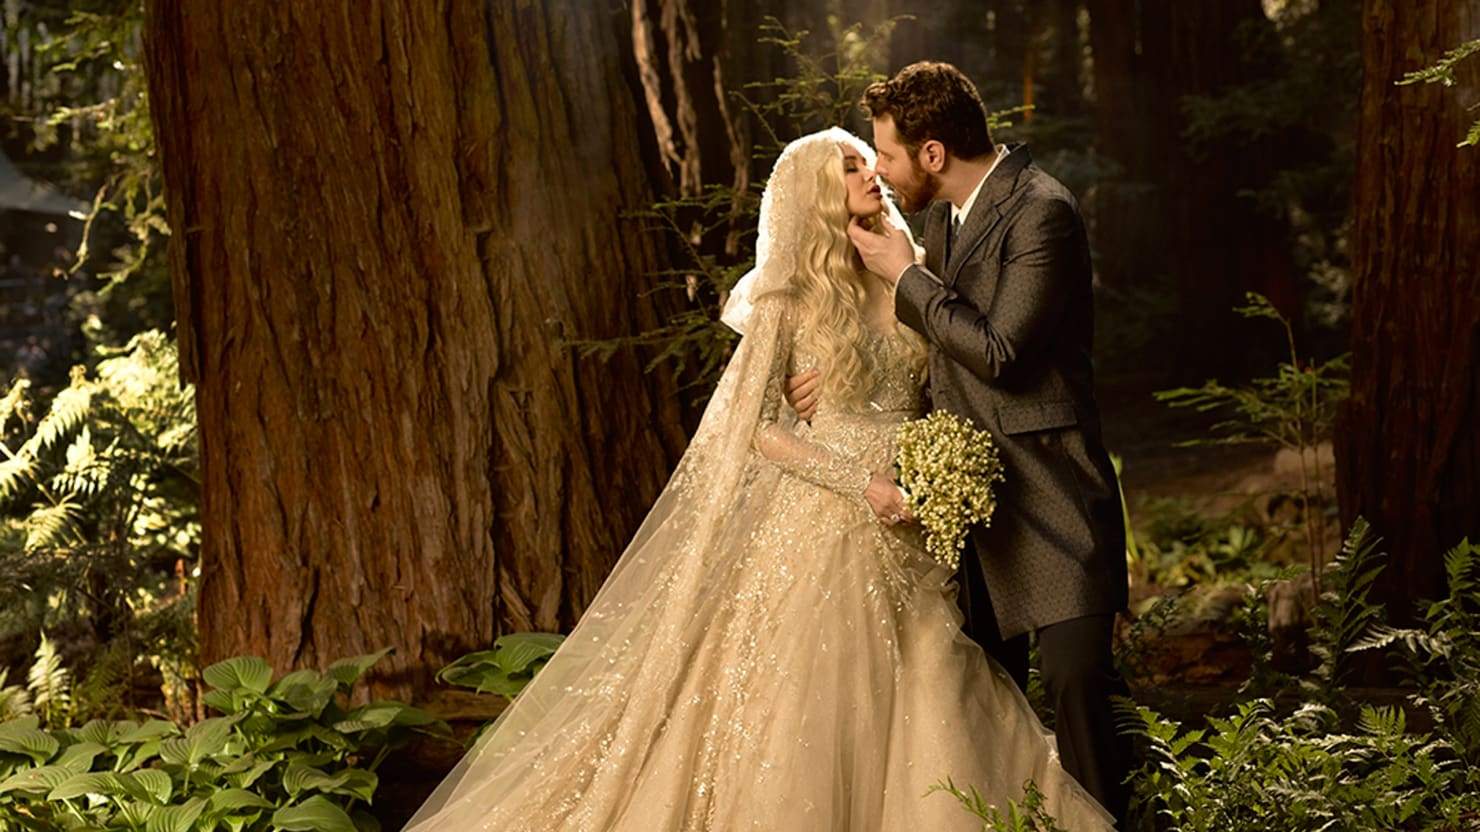 Sean Parker Weds Alexandra Lenas Game Of Thrones Theme A Mystery